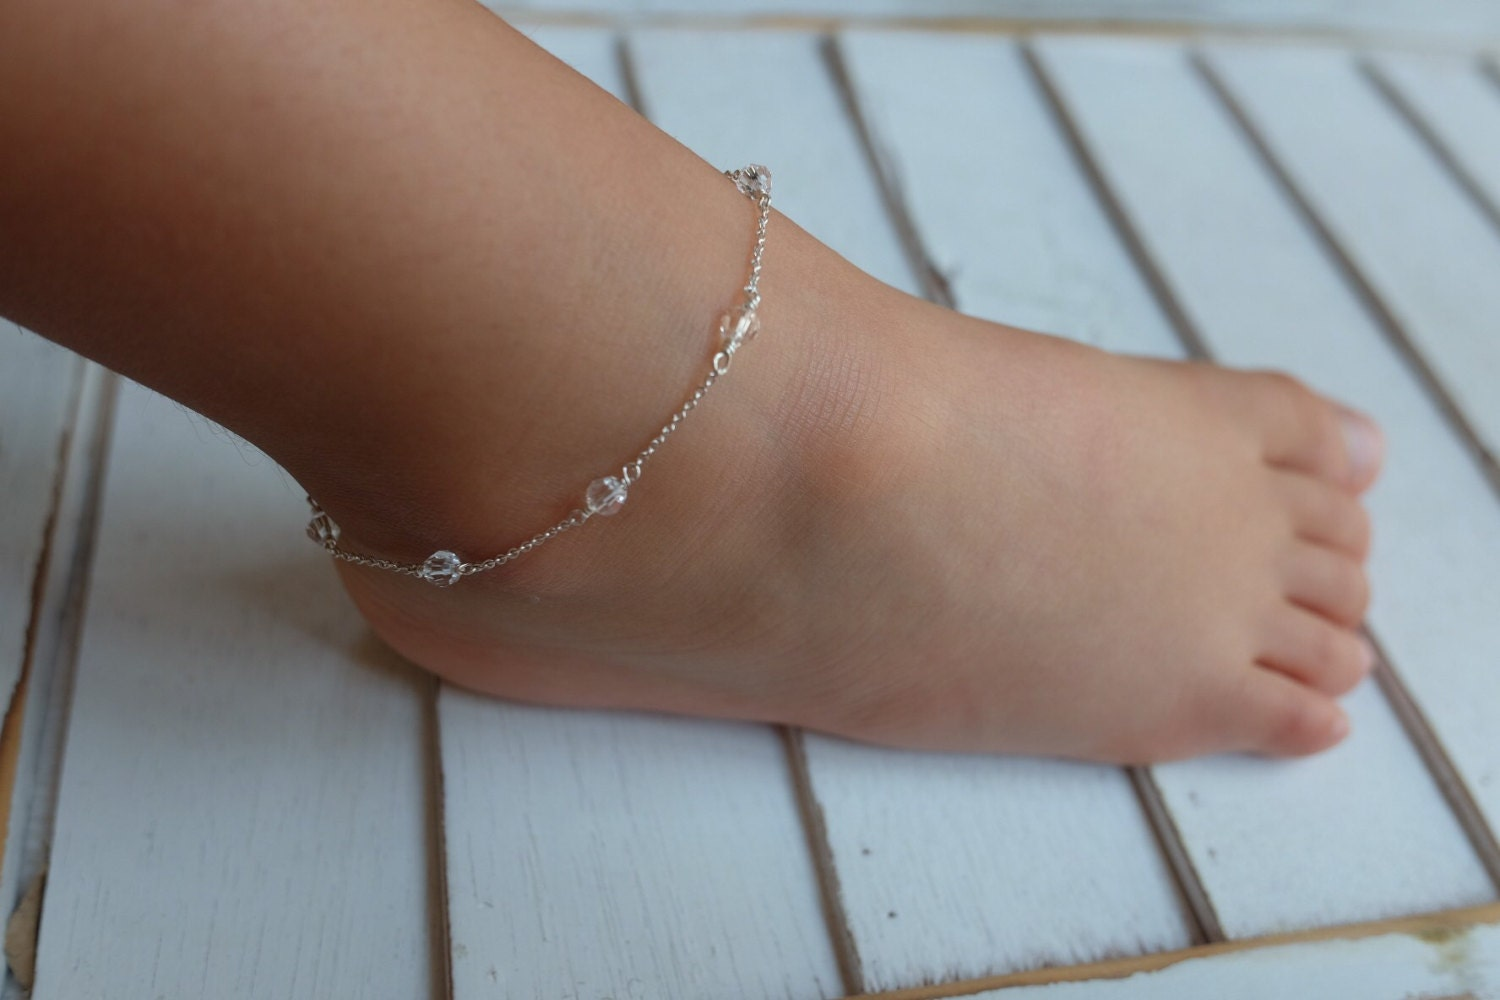 ankle children jewelry ksvhs baby handmade toddler thailand anklets two set s elegant anklet bracelet